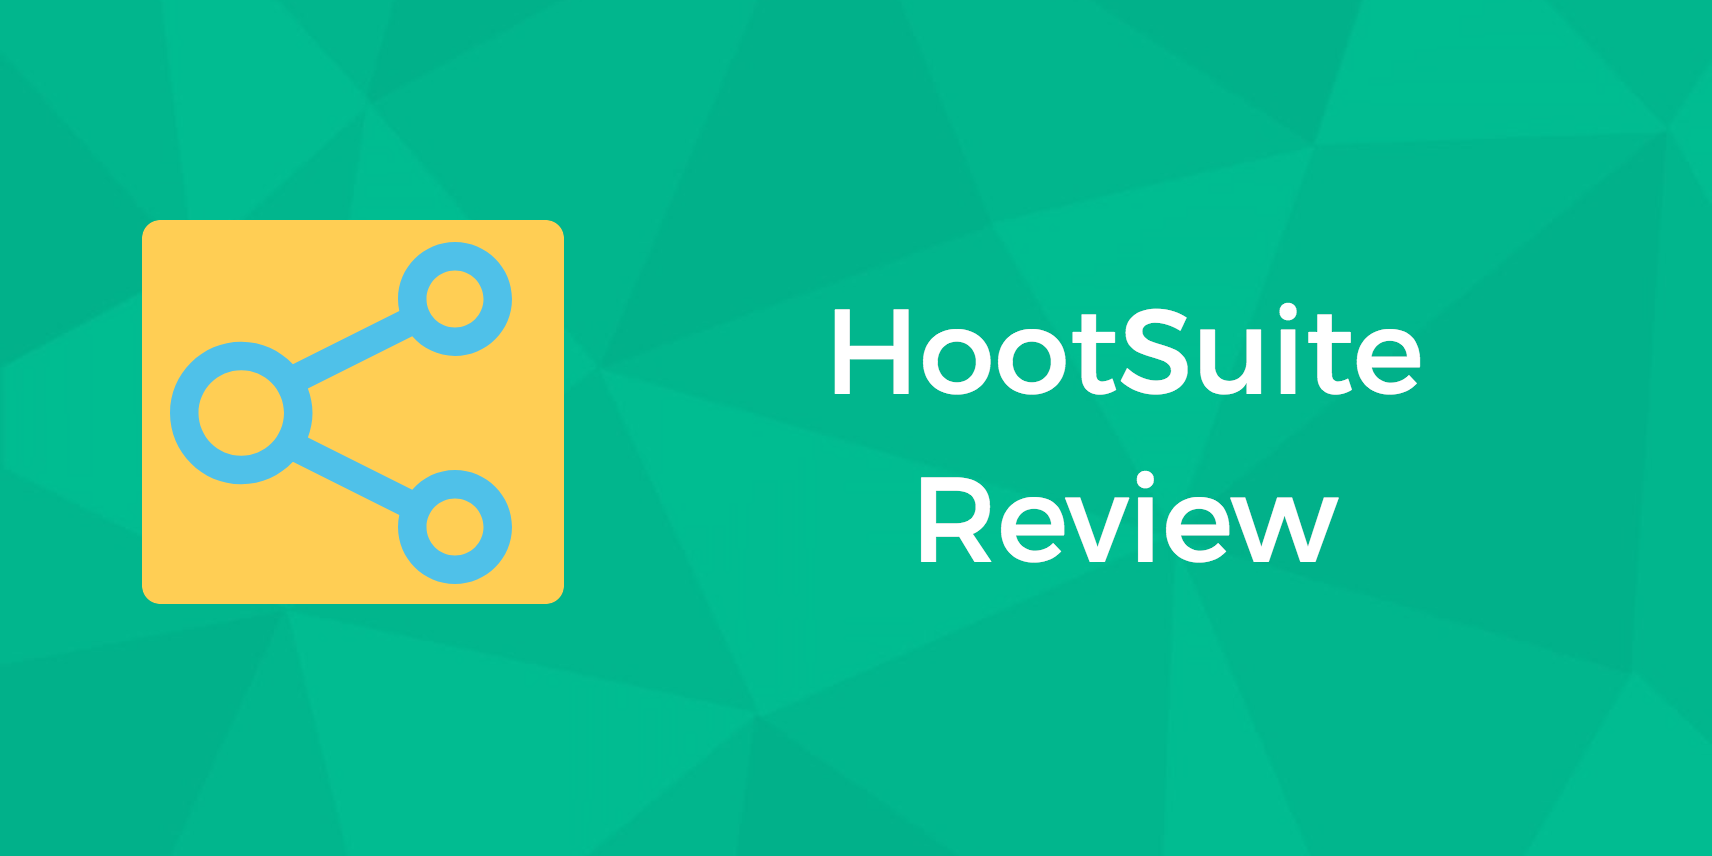 hootsuite assignments allows you to